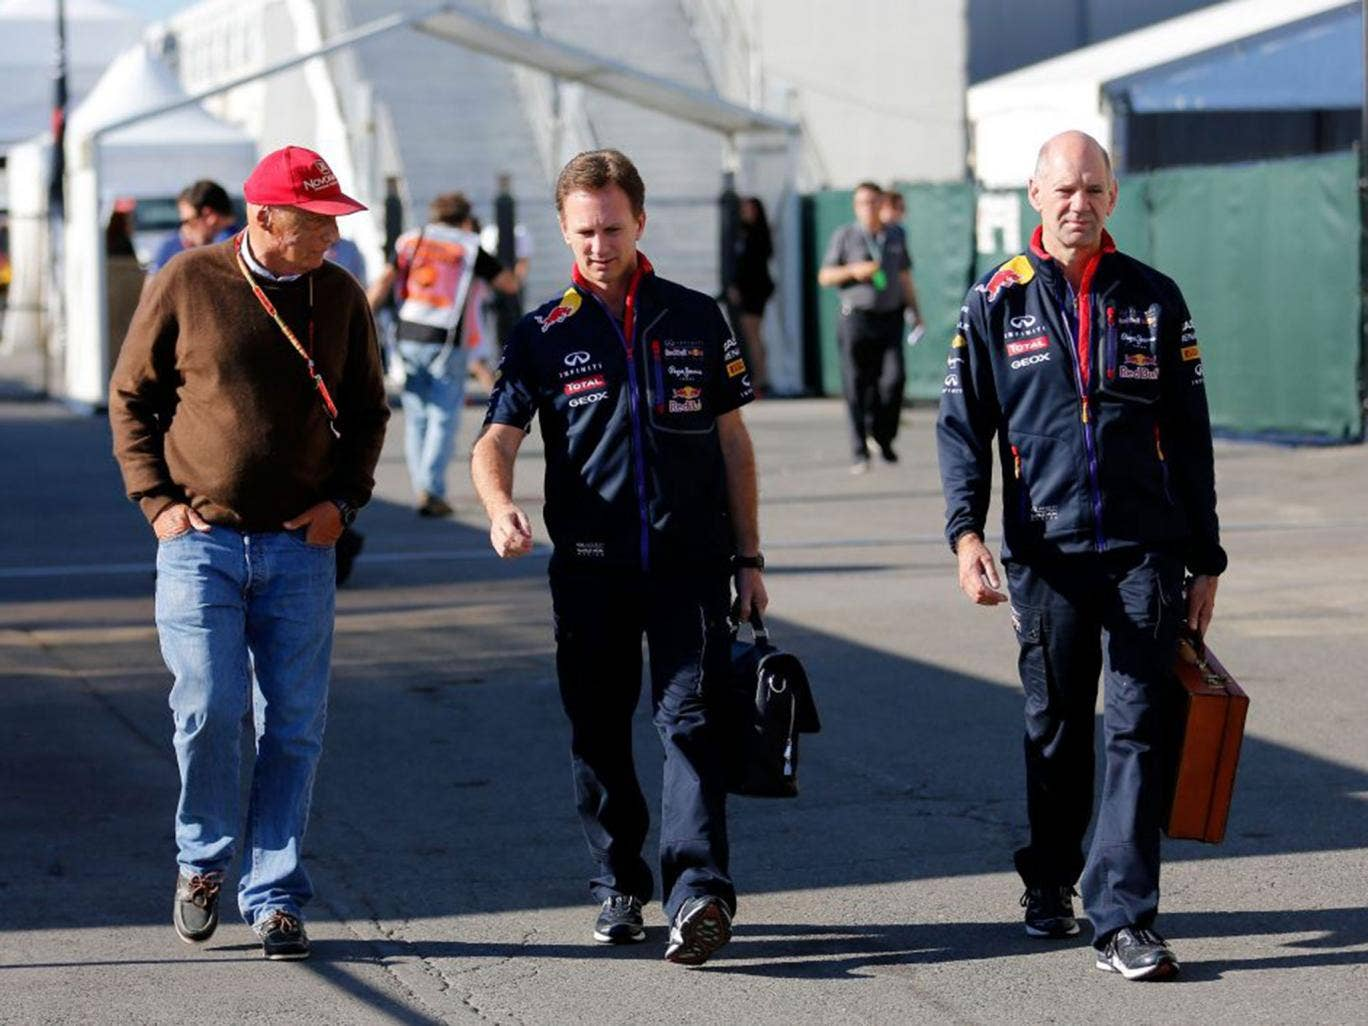 Adrian Newey, far right, will now be allowed to work on design projects involving boats and planes, as well as F1 cars